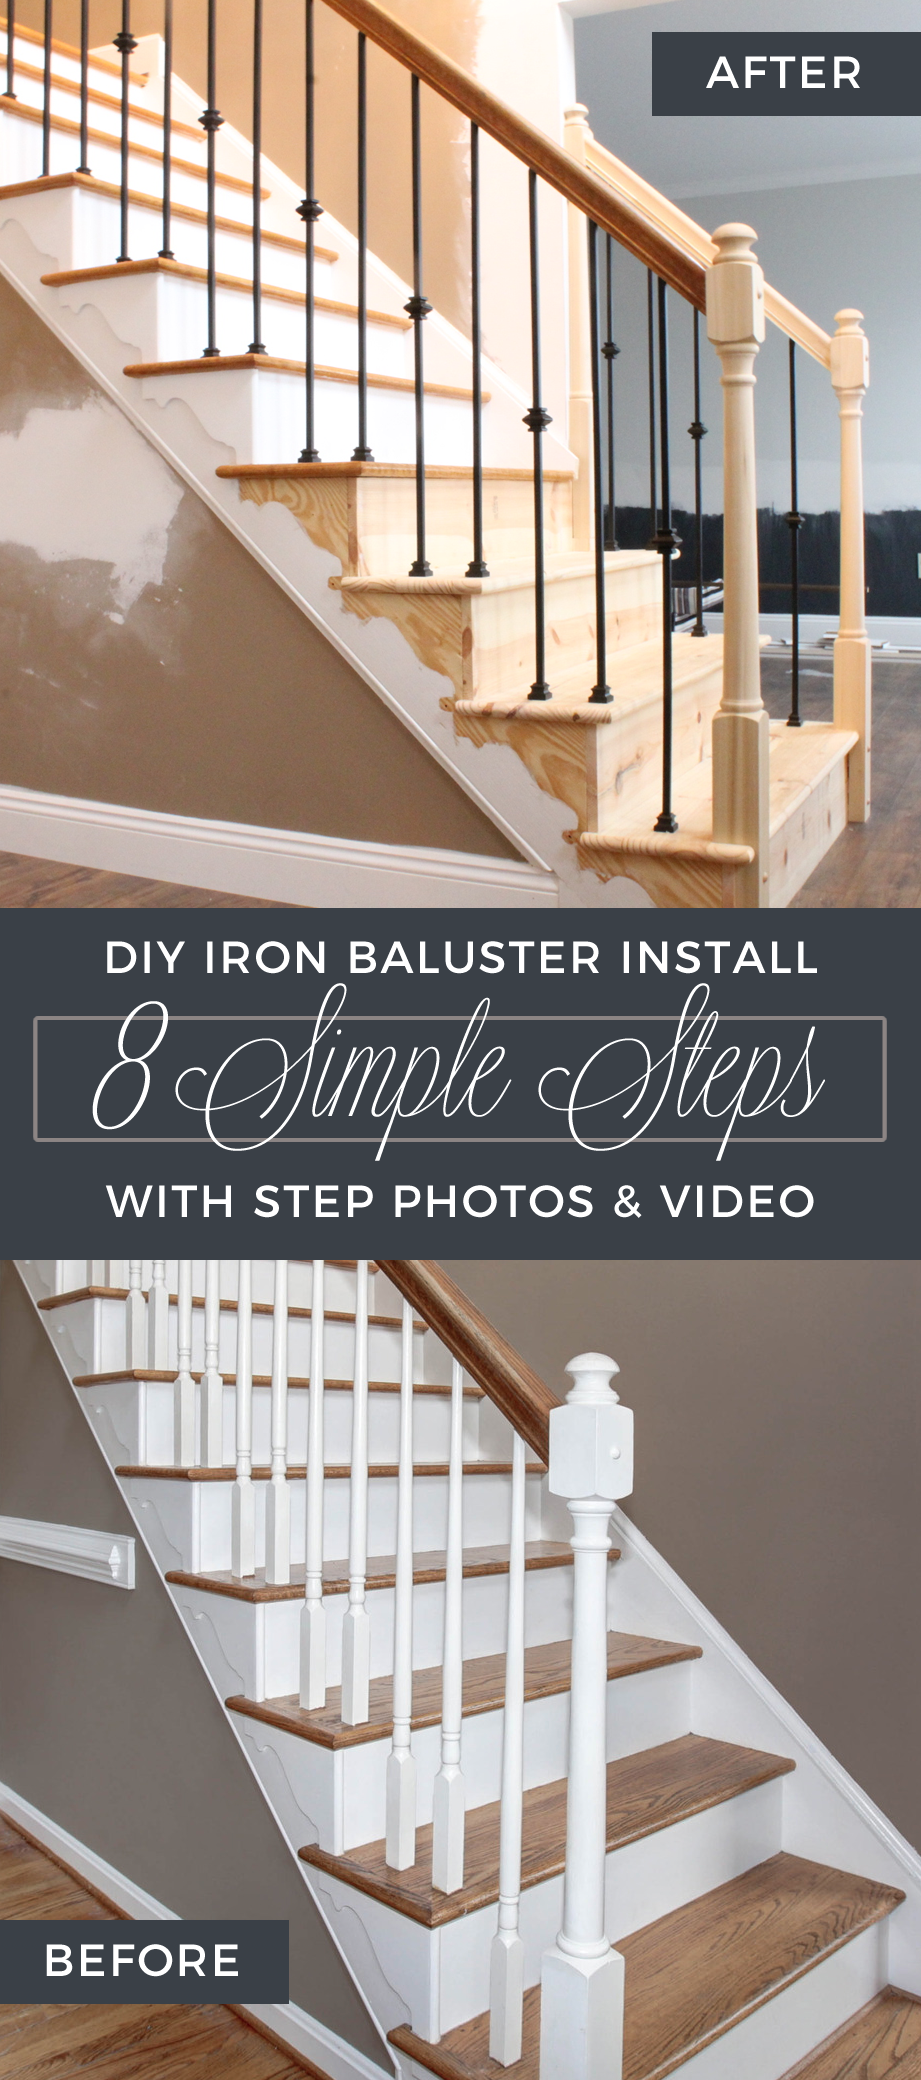 Best Diy Wrought Iron Baluster Stair Spindle Install With Step Photos And How To Video How To 400 x 300